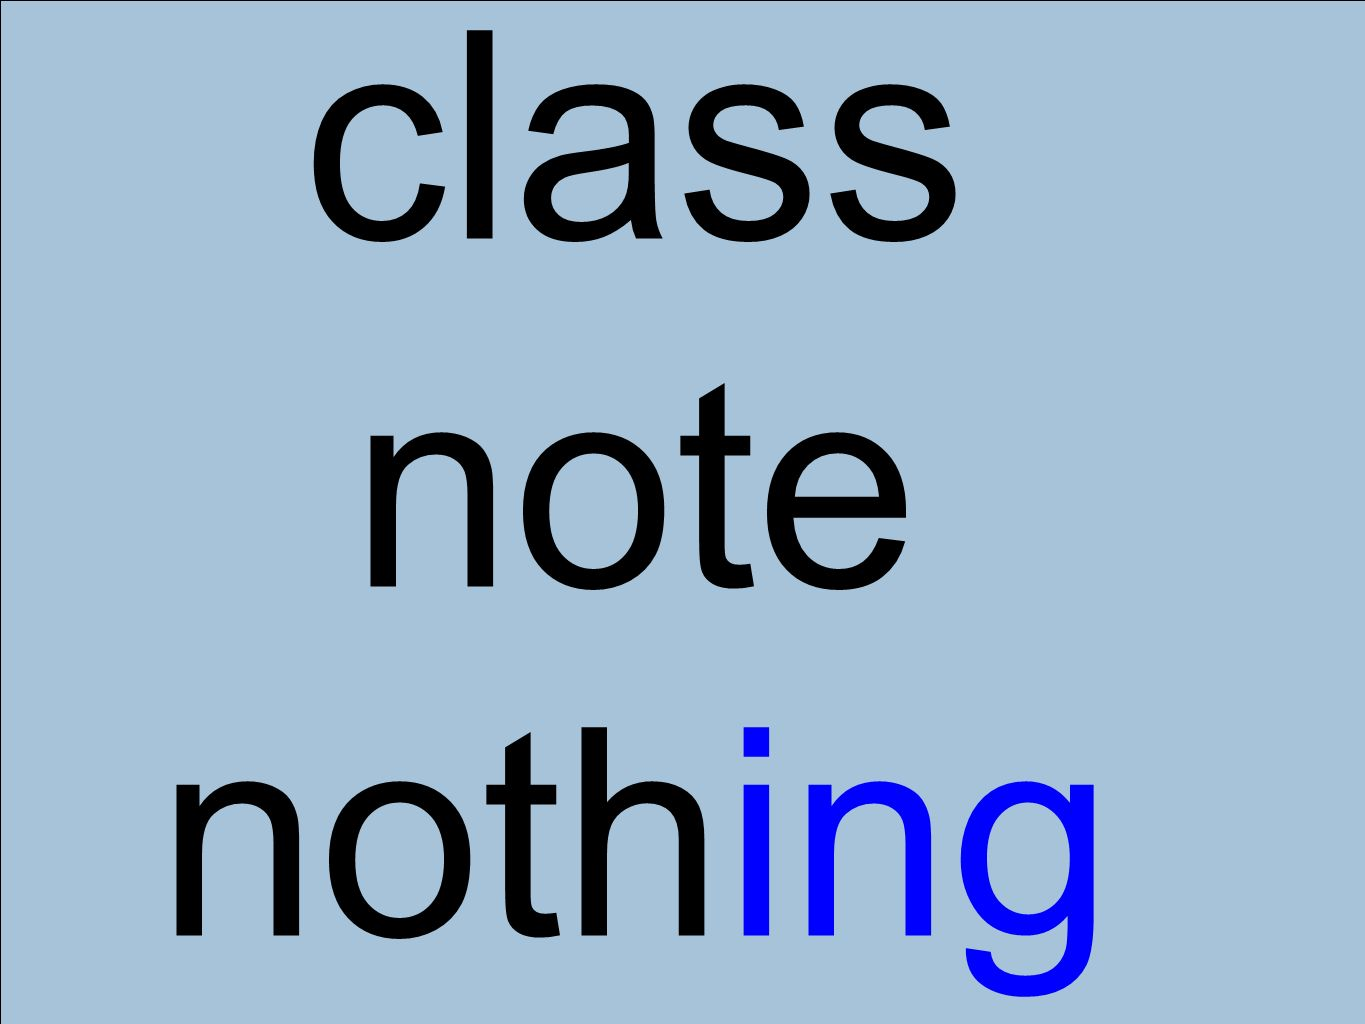 class note nothing